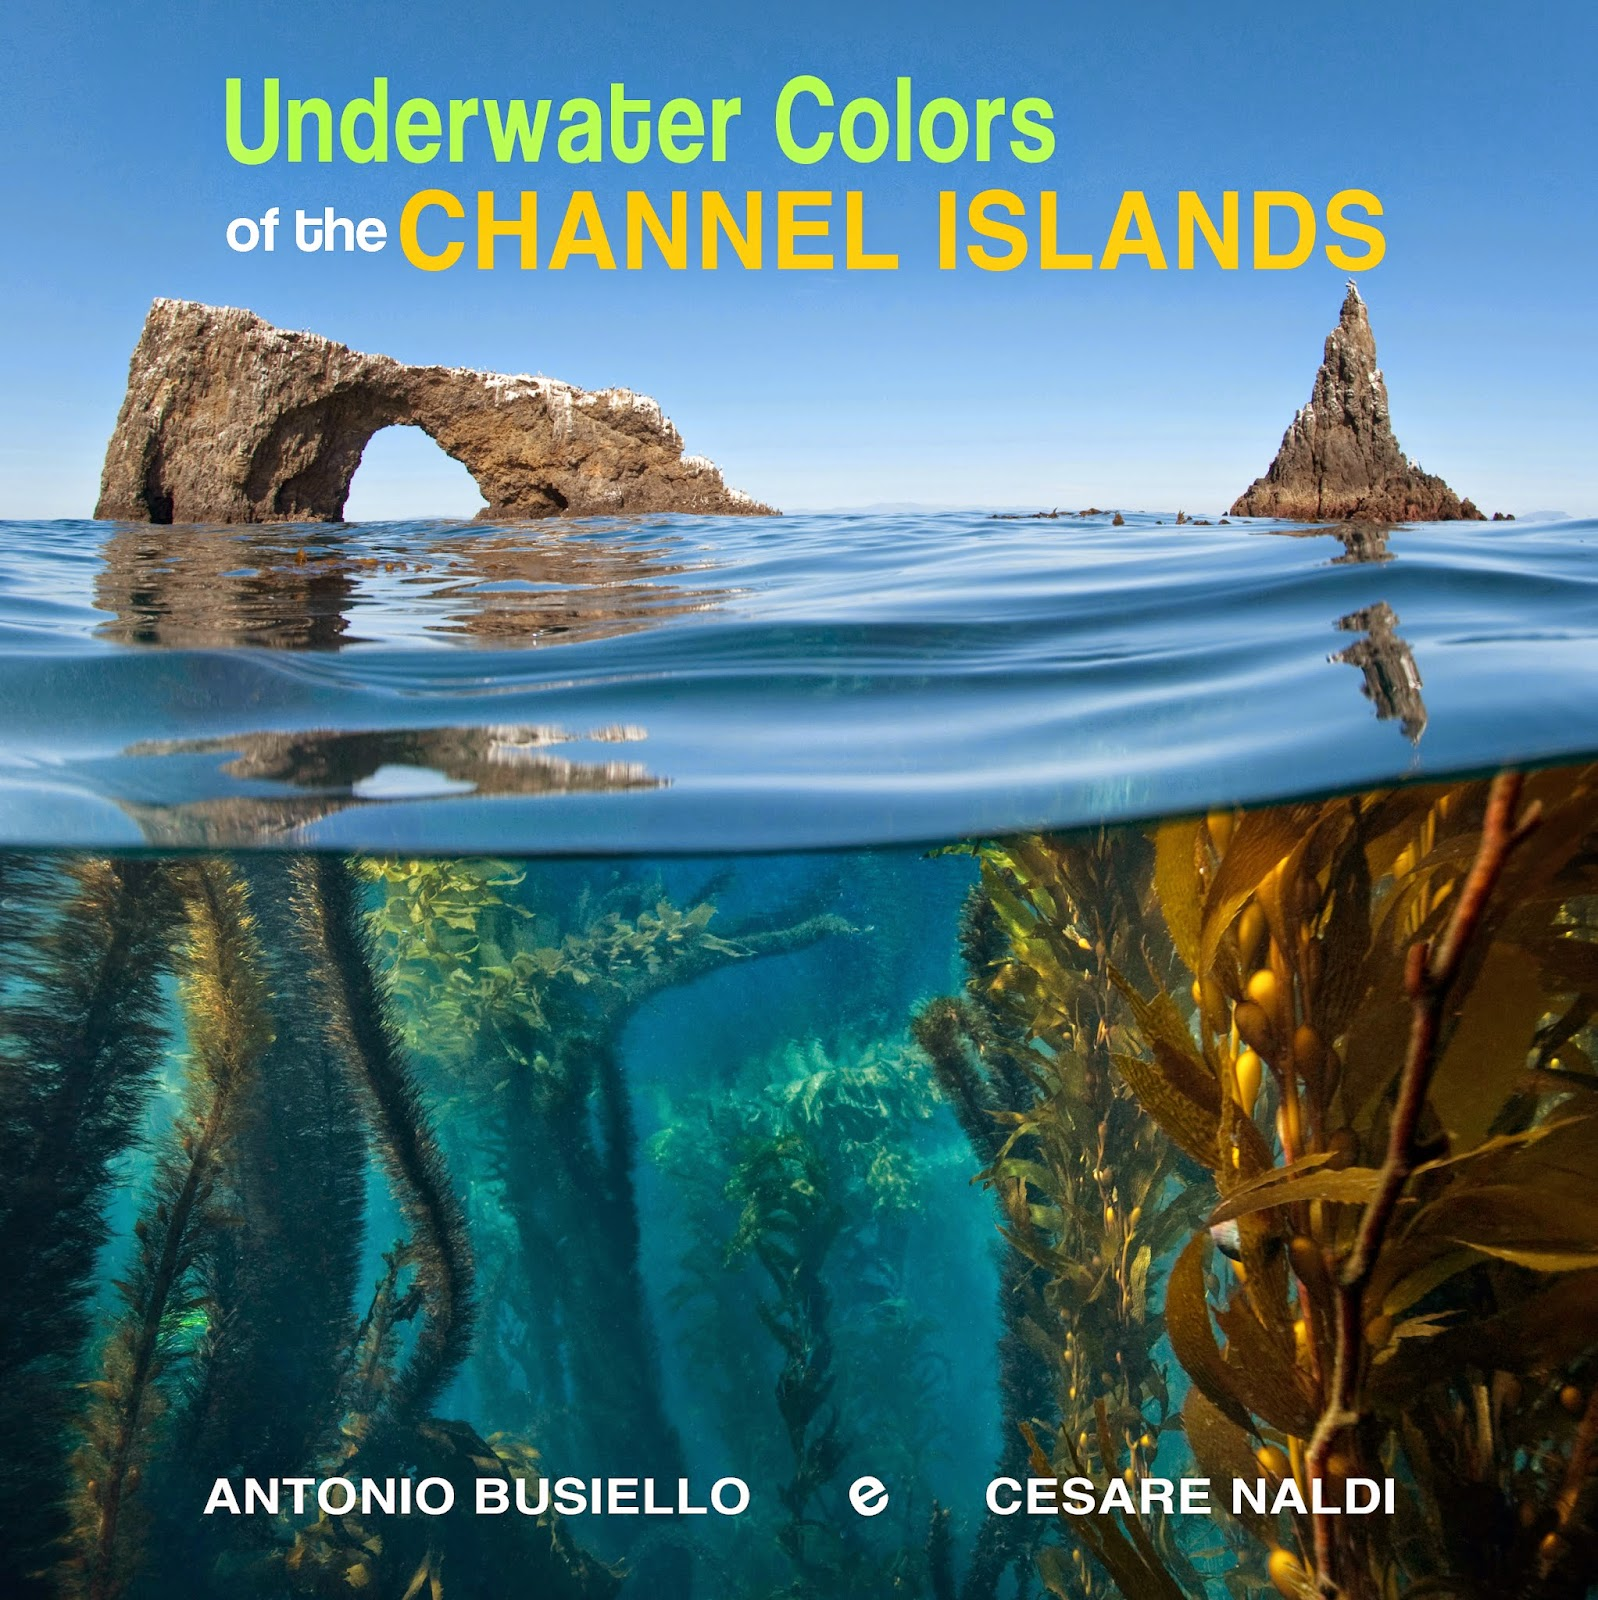 https://www.kickstarter.com/projects/channelislandsbook/underwater-colors-of-the-channel-islands-0